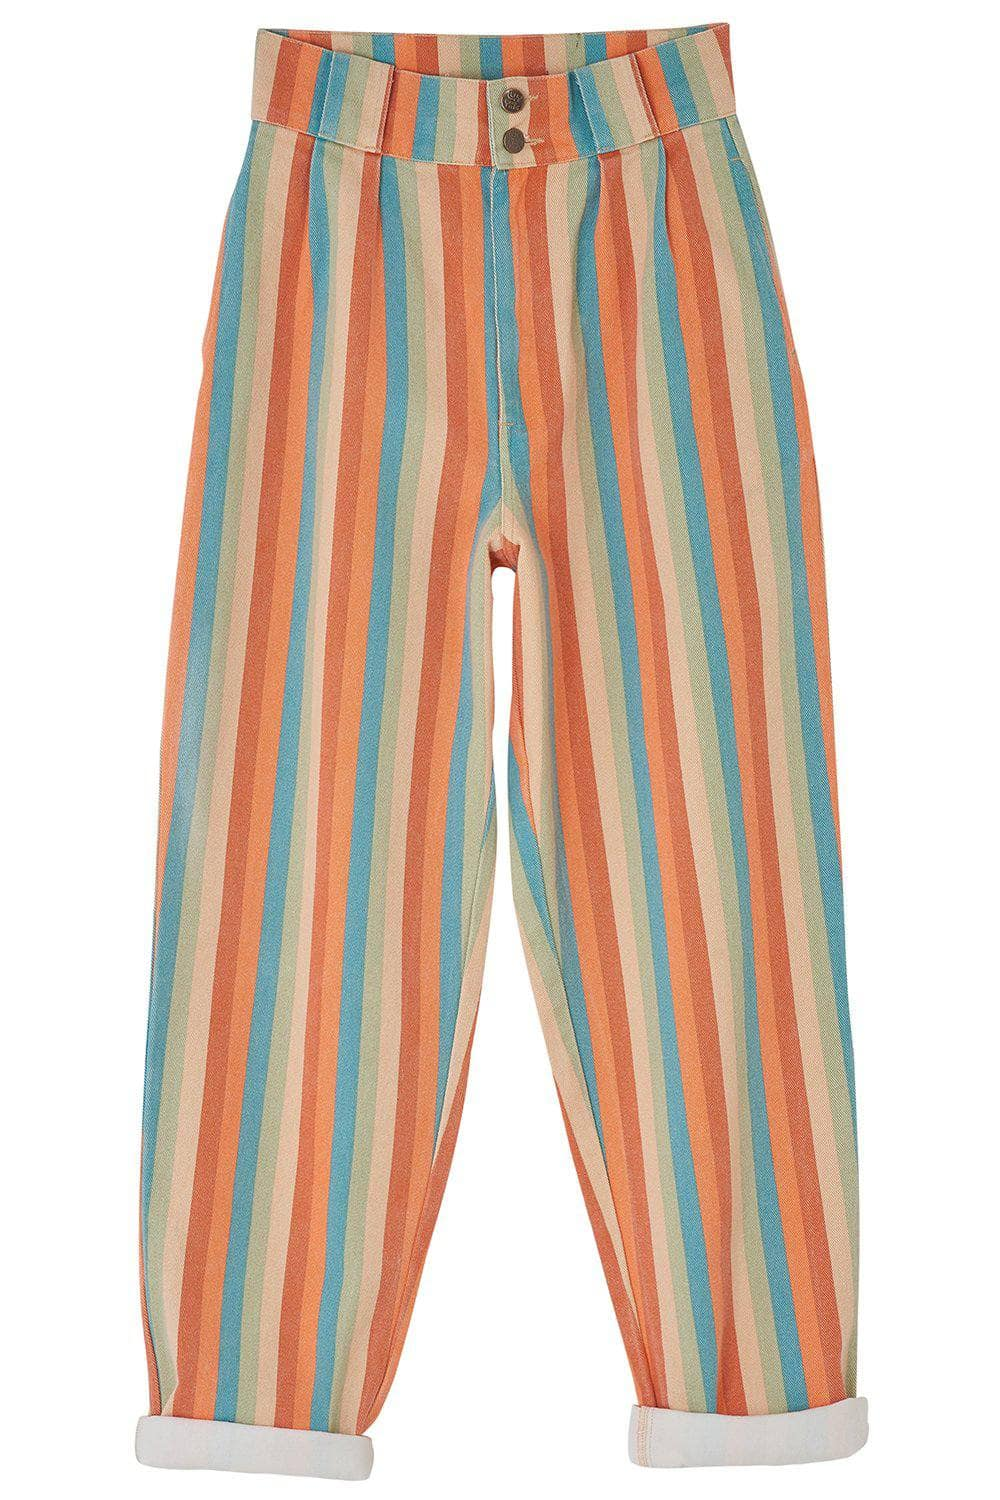 Lucy & Yak jeans The Sundaze Collection - 'Addison' High Waisted Organic Cotton Twill Jeans in Earthy Rainbow